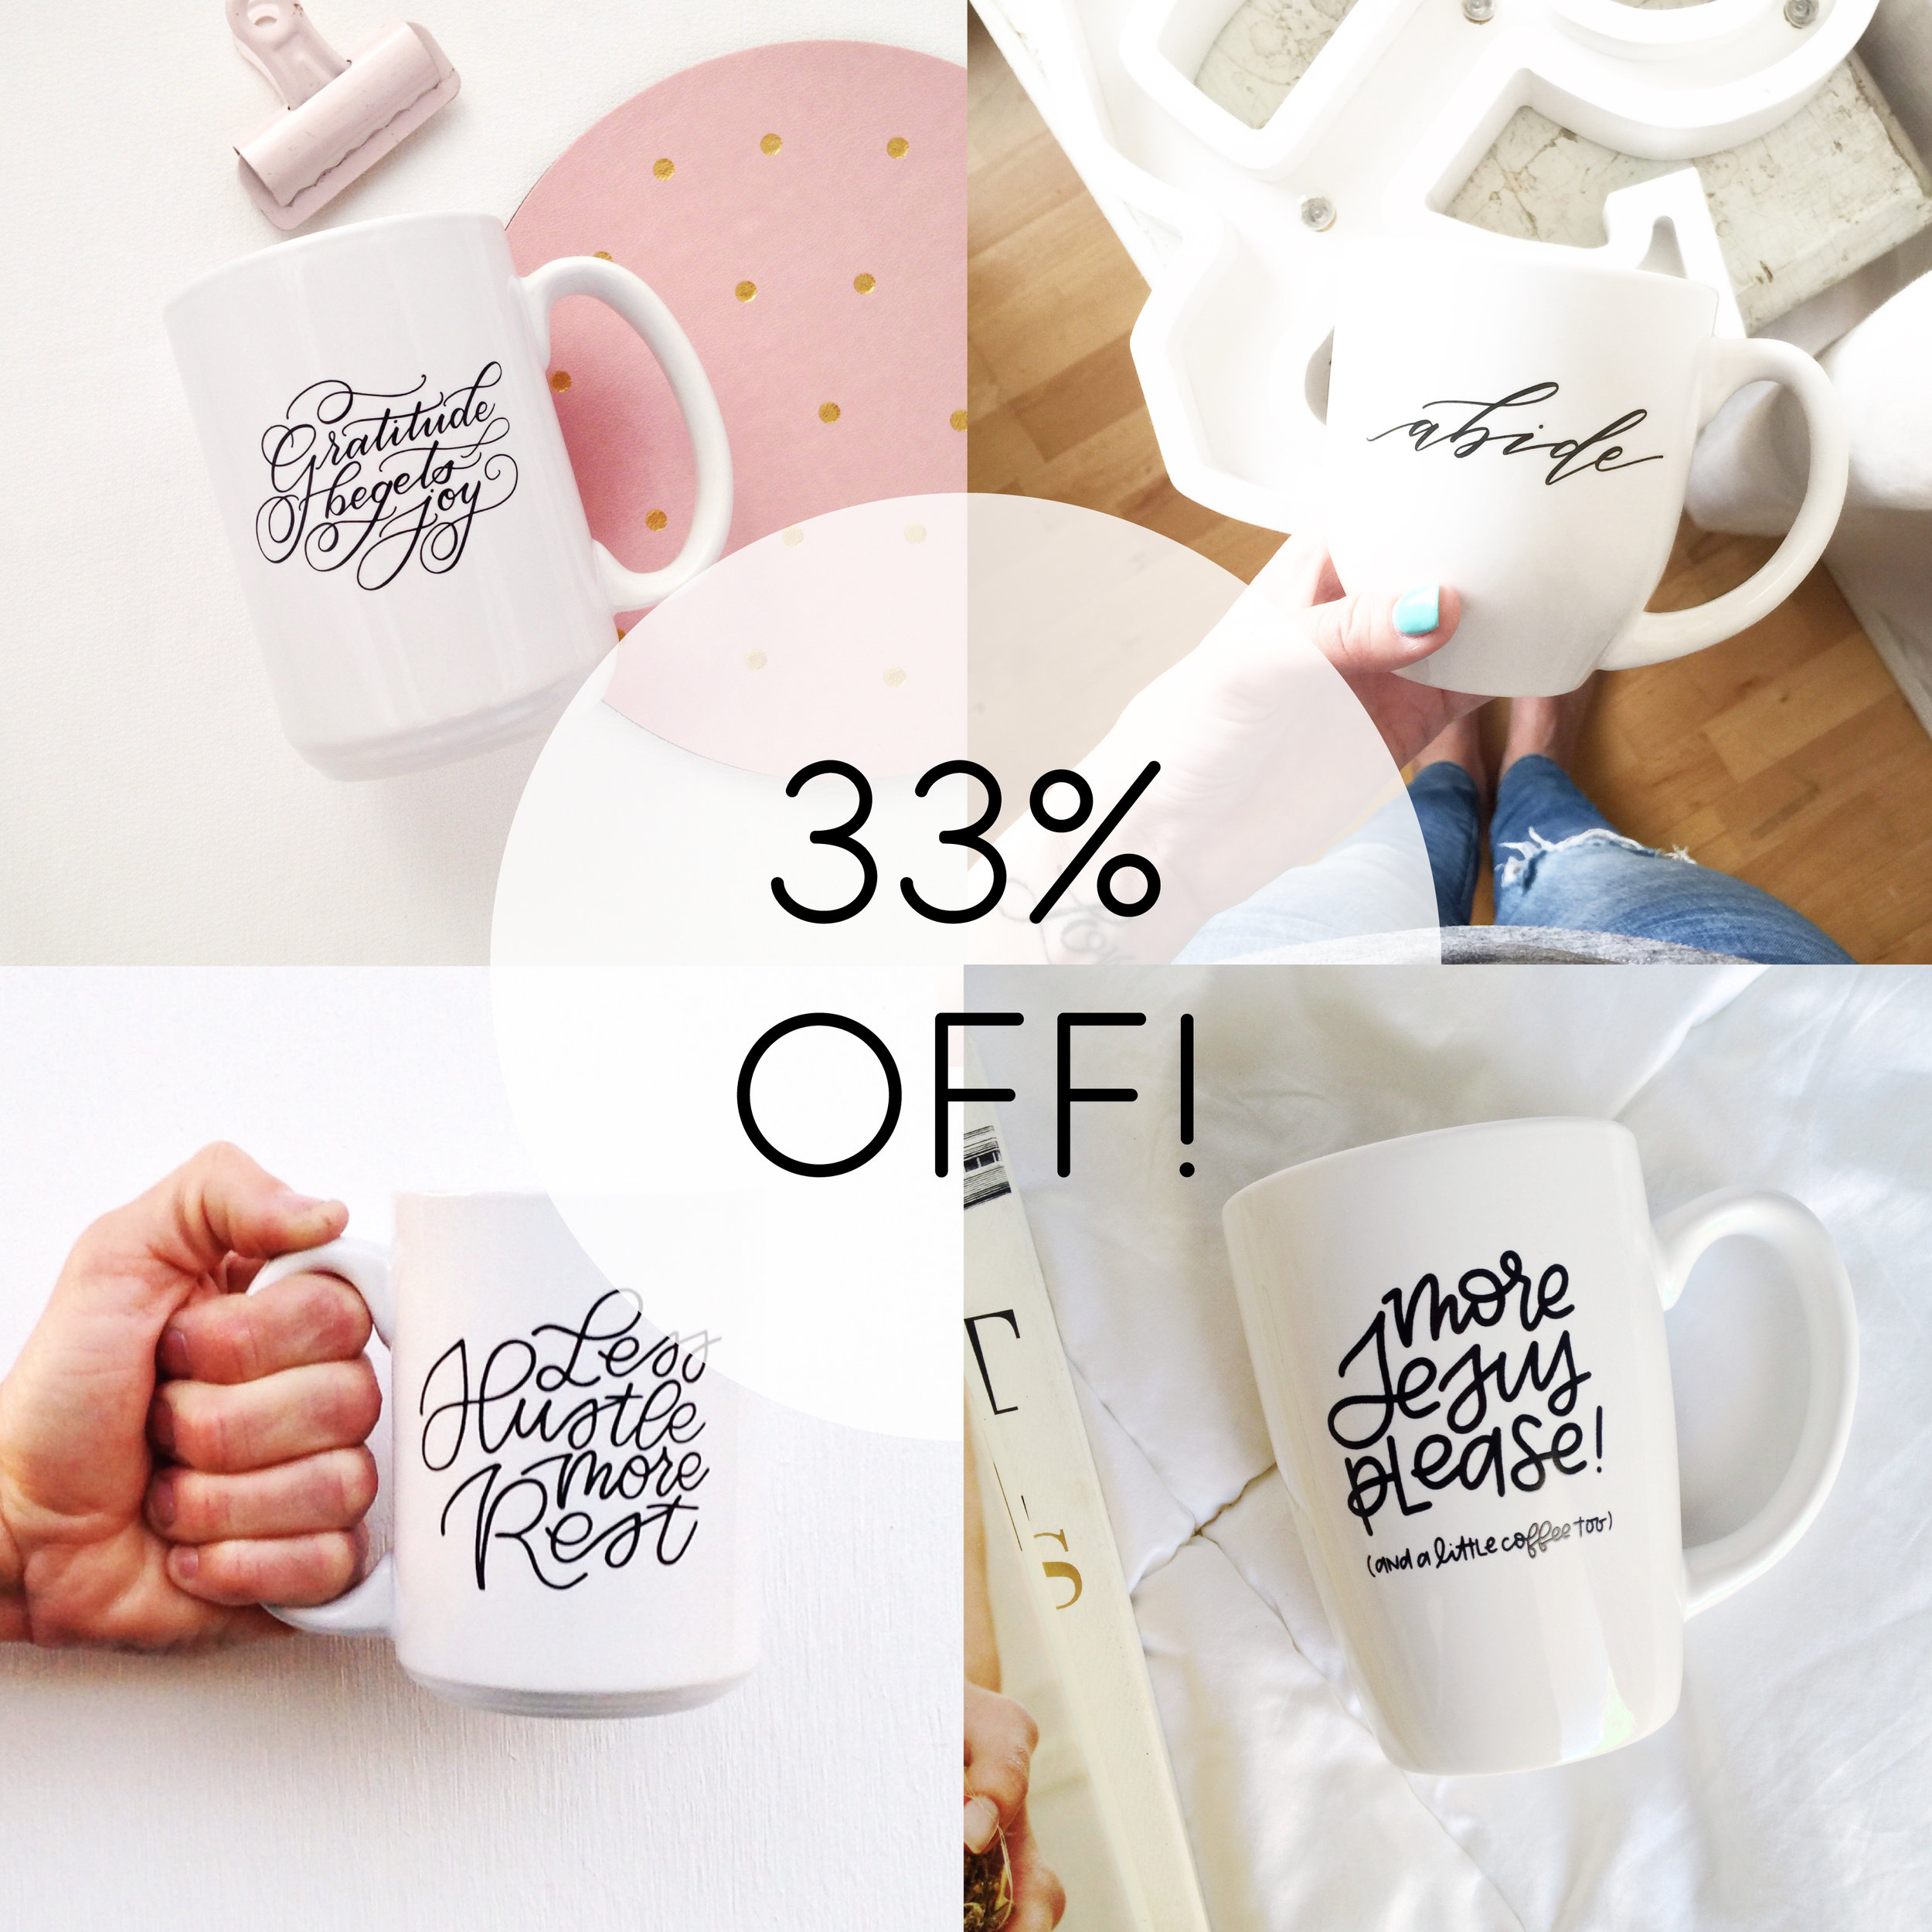 MUGS  : 33% OFF  (Sale Prices: $8-$10)